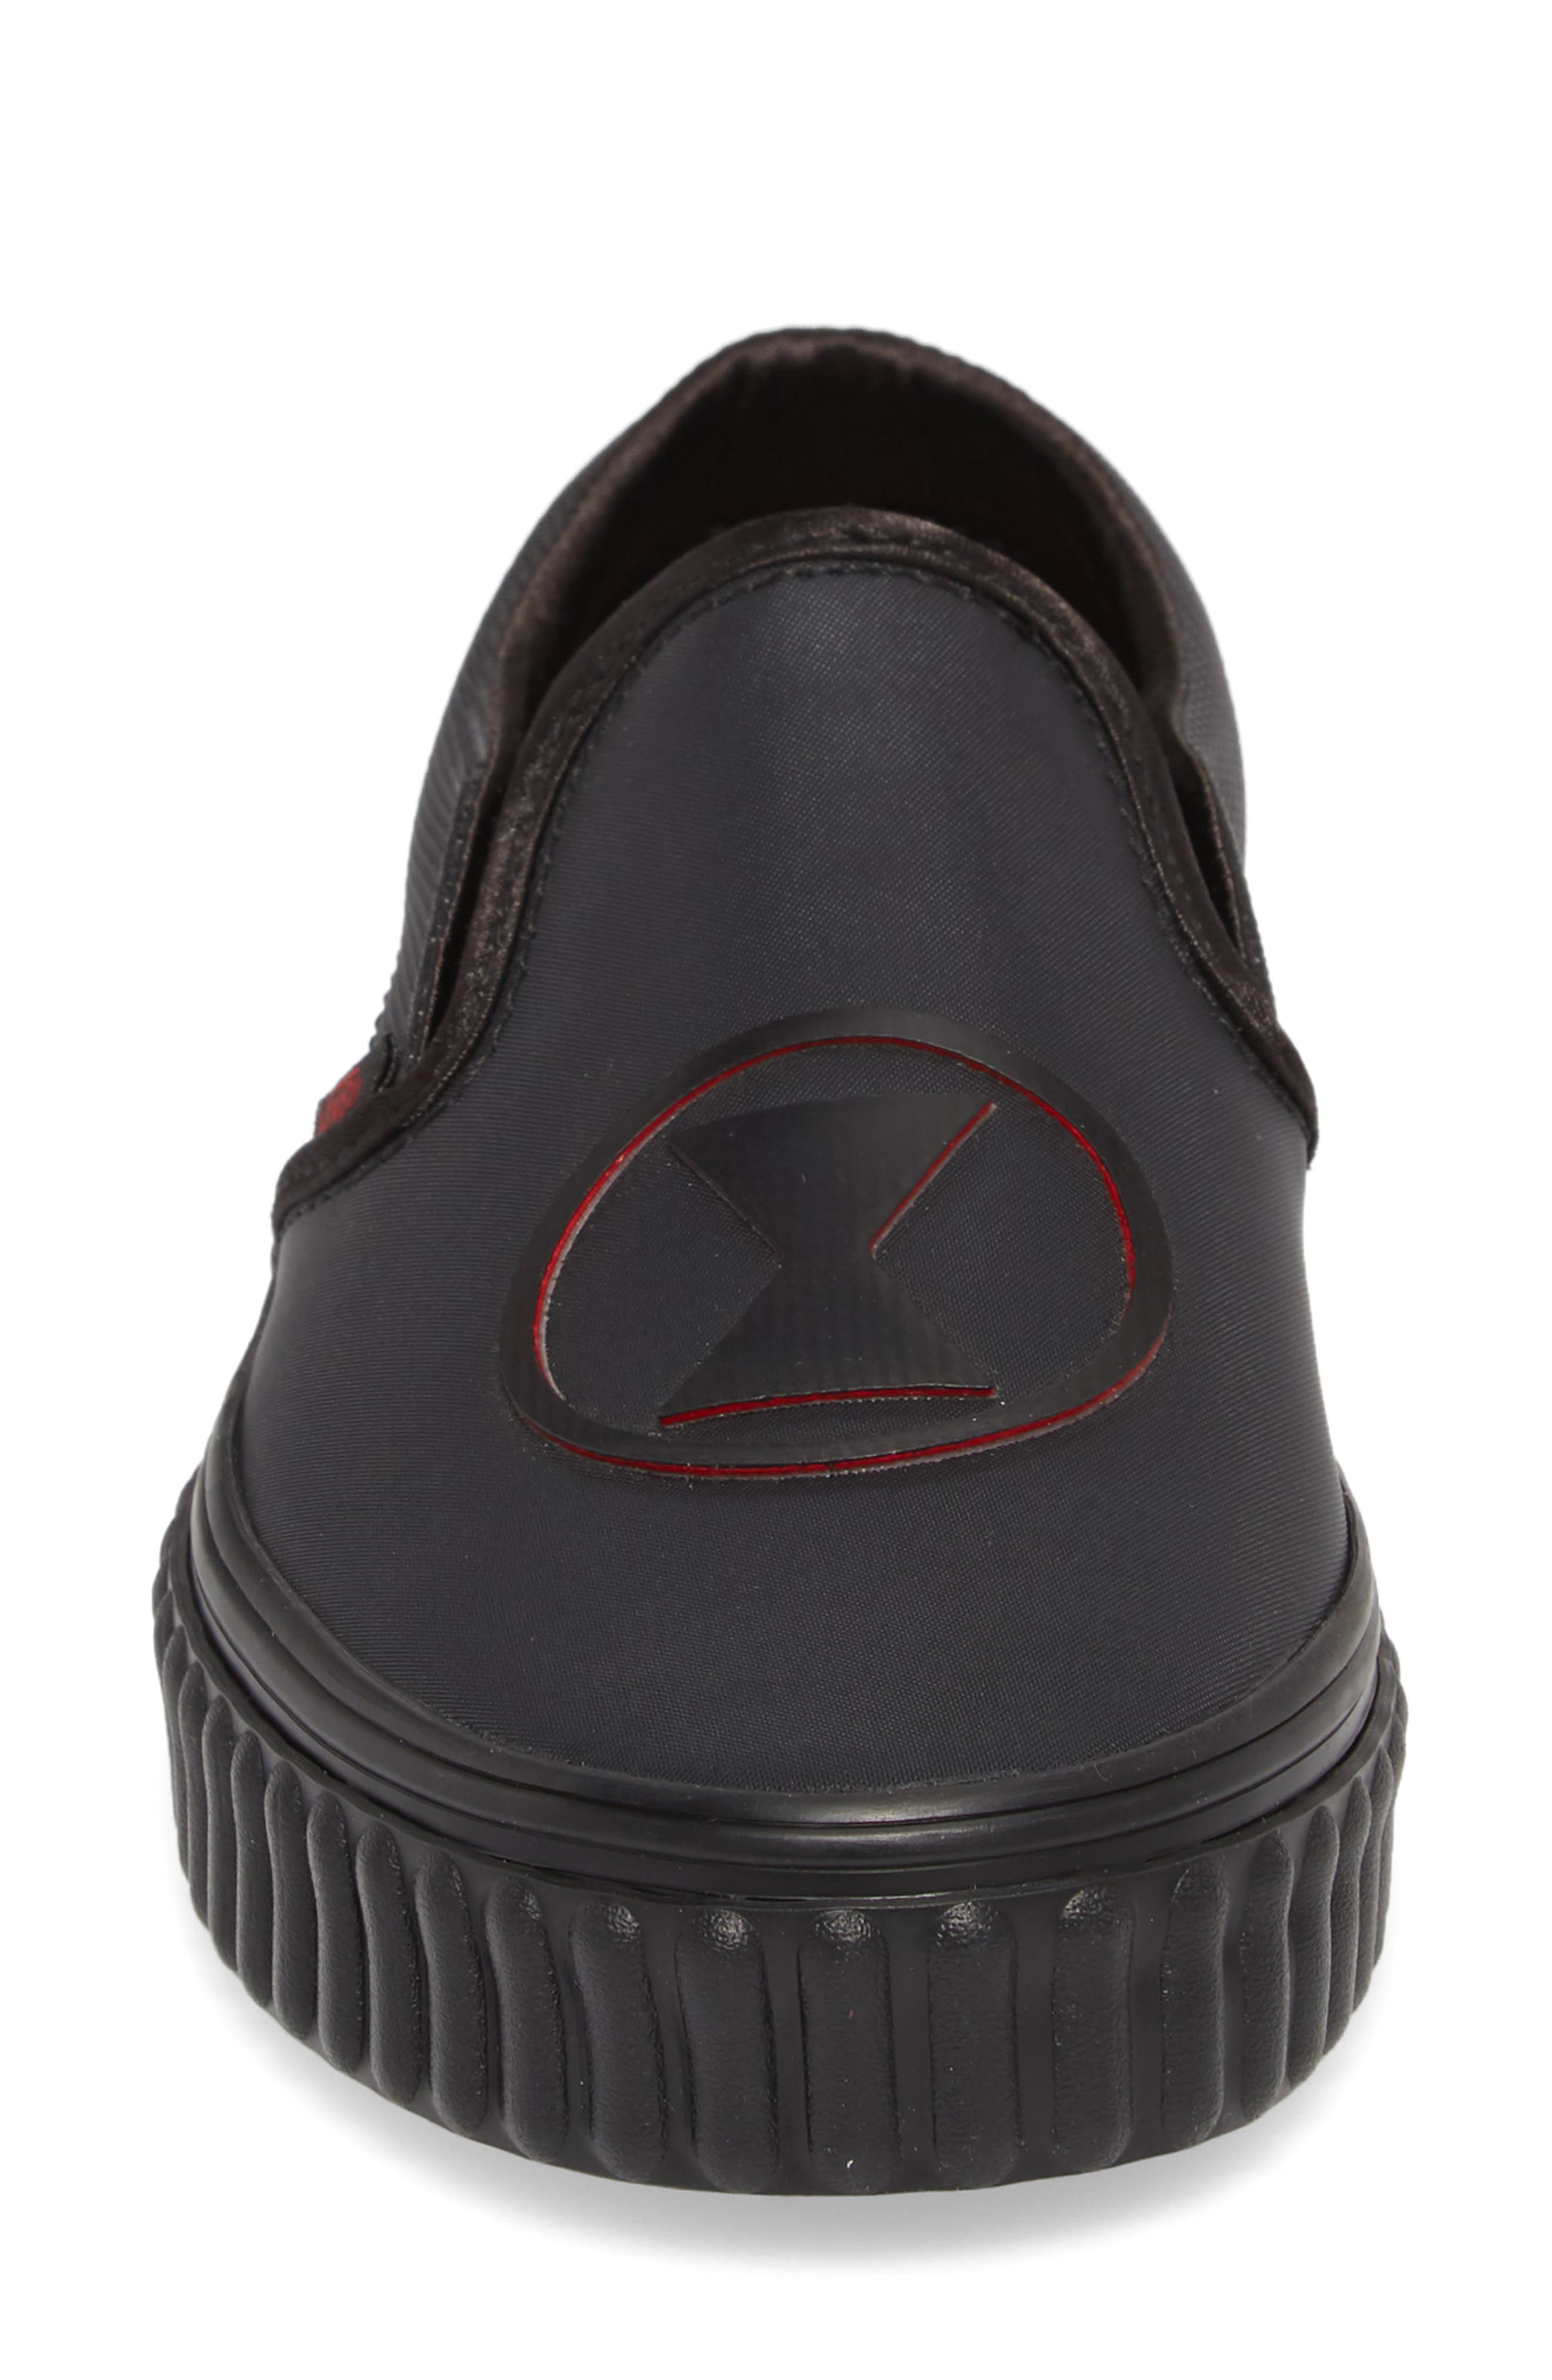 Marvel<sup>®</sup> Black Widow Classic Slip-On,                             Alternate thumbnail 4, color,                             MARVEL BLACK WIDOW/ BLACK